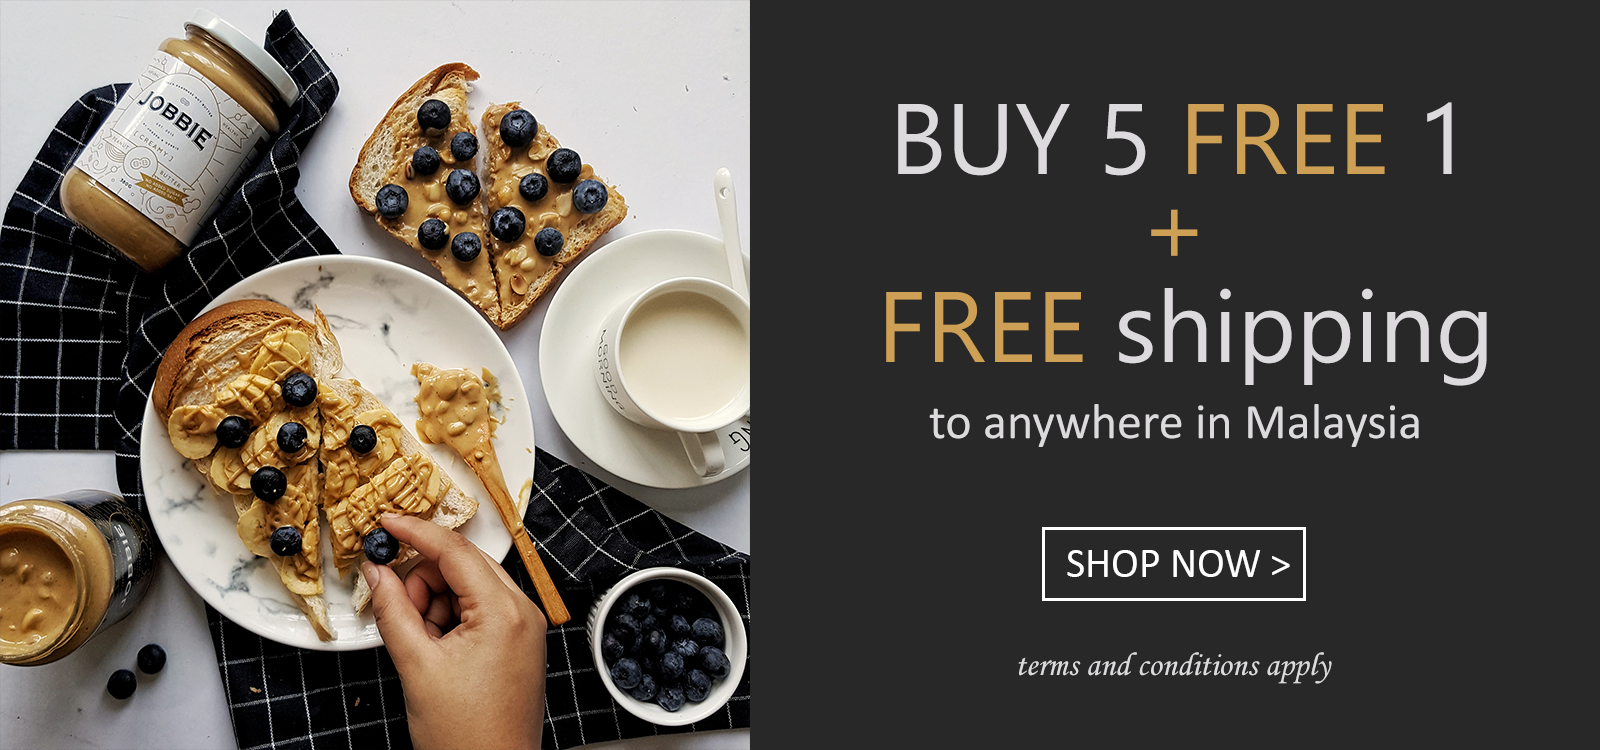 Jobbie Nut Butter BUY5FREE1 Free delivery